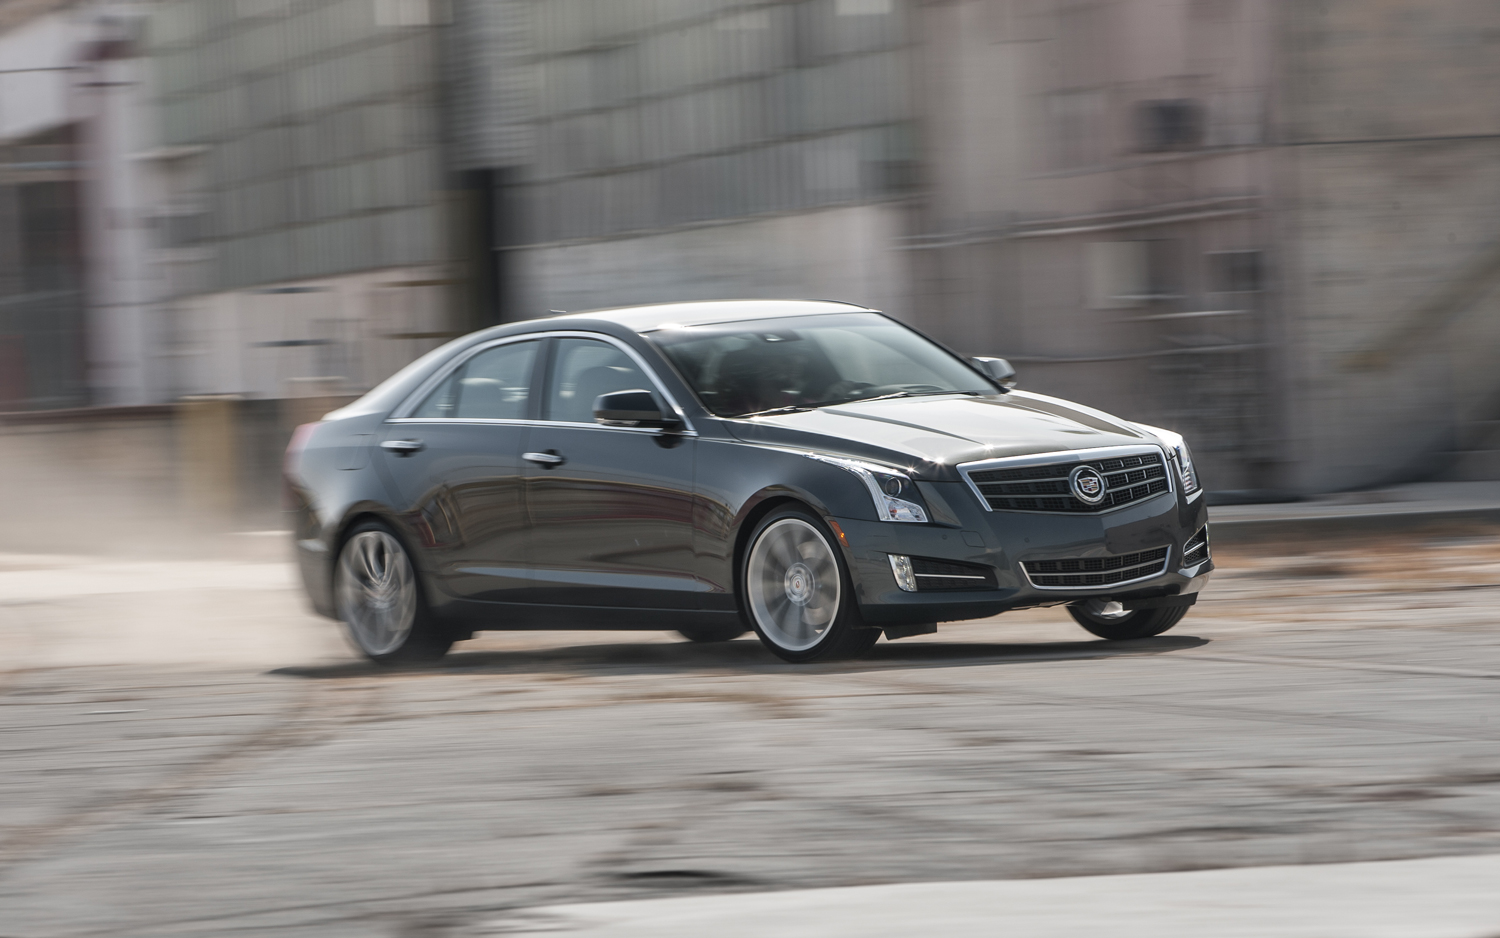 exclusive 2013 cadillac ats six speed manual transmission being rh motortrend com cadillac ats manual transmission used cadillac ats manual transmission used